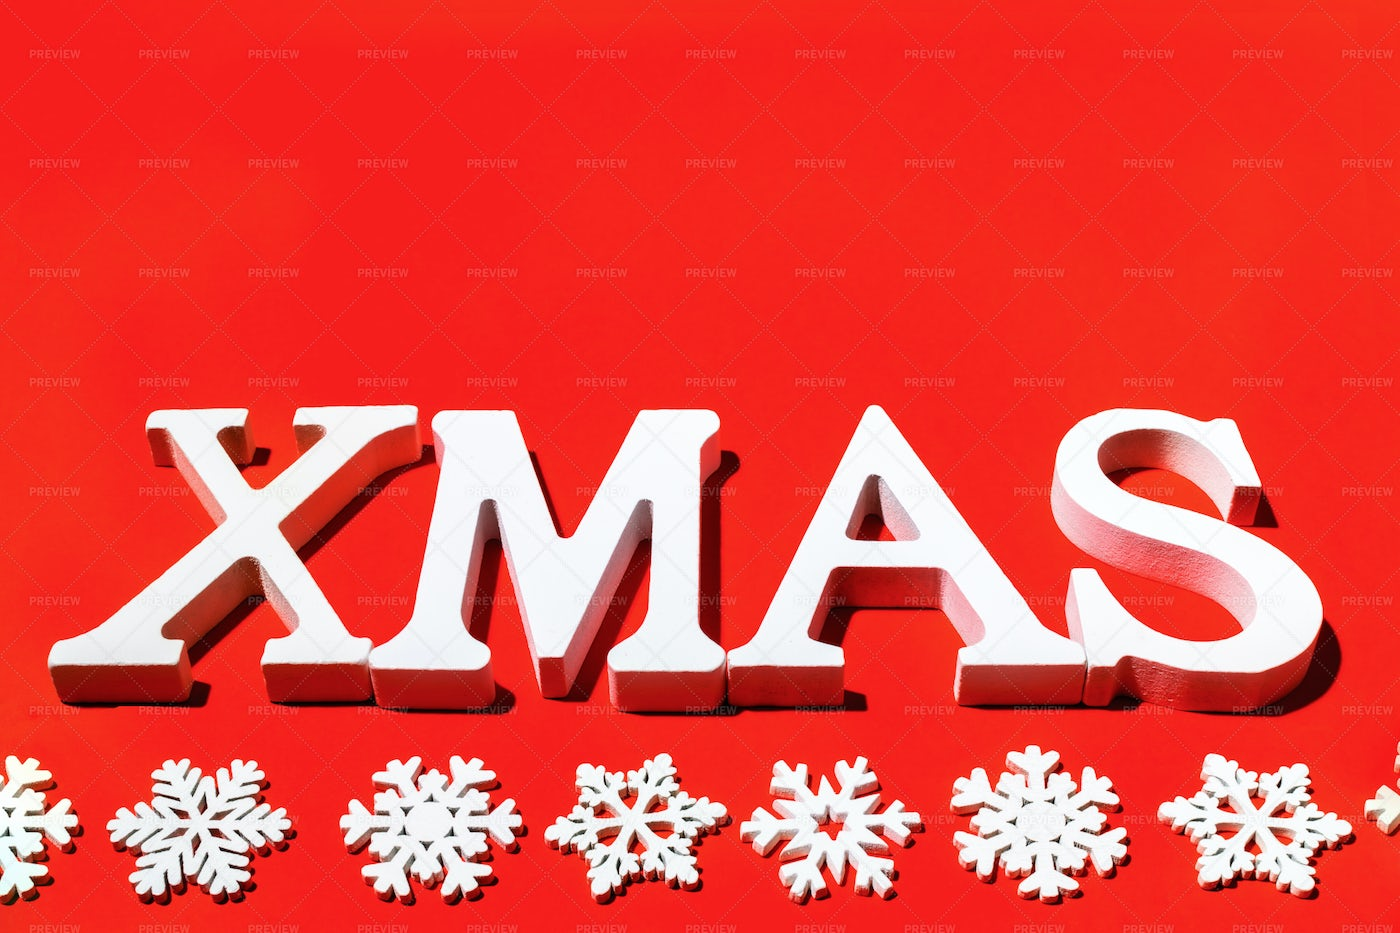 White Letters Xmas On Red.: Stock Photos